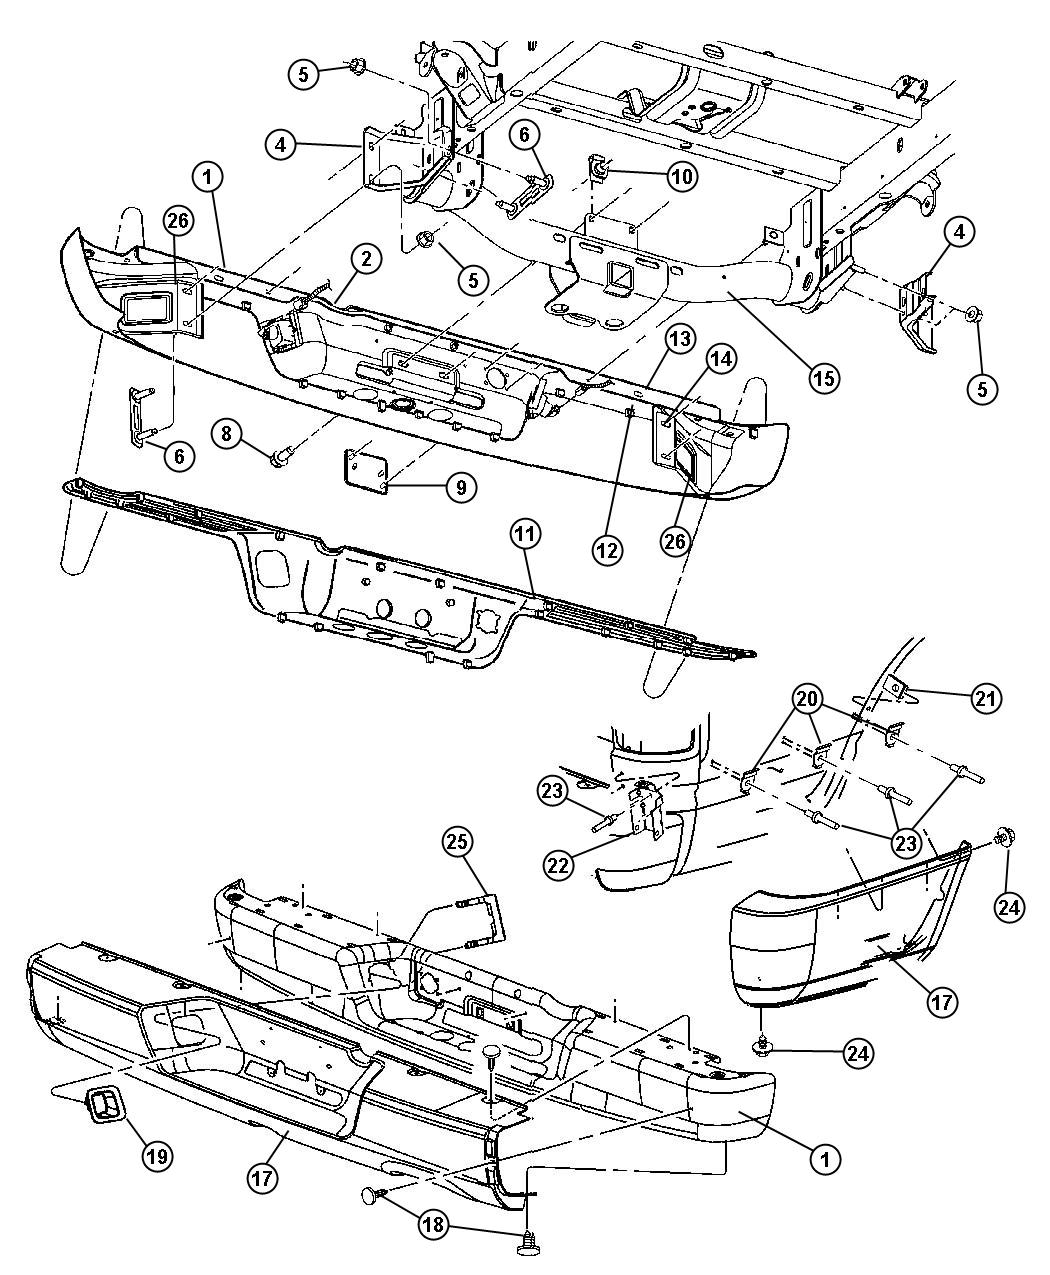 2004 dodge ram 1500 parts diagram speed sensor wiring free engine image for